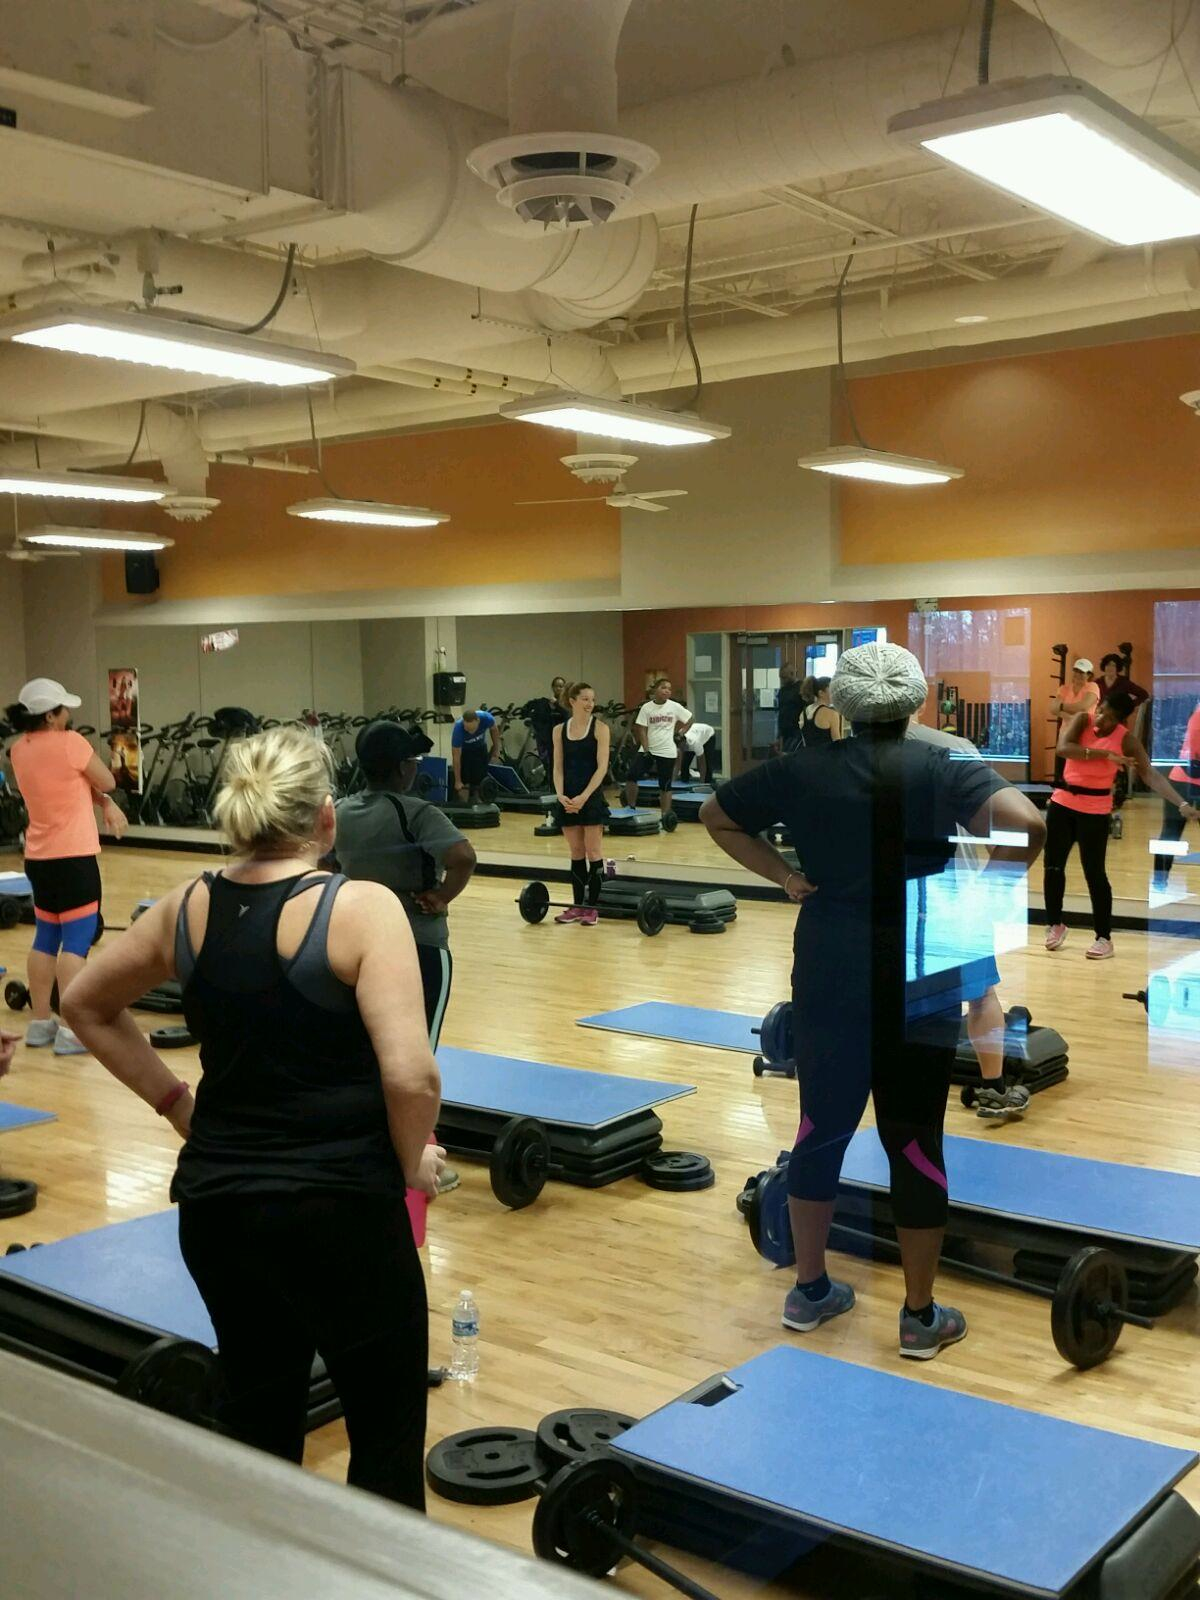 Shadowing in BodyPump class